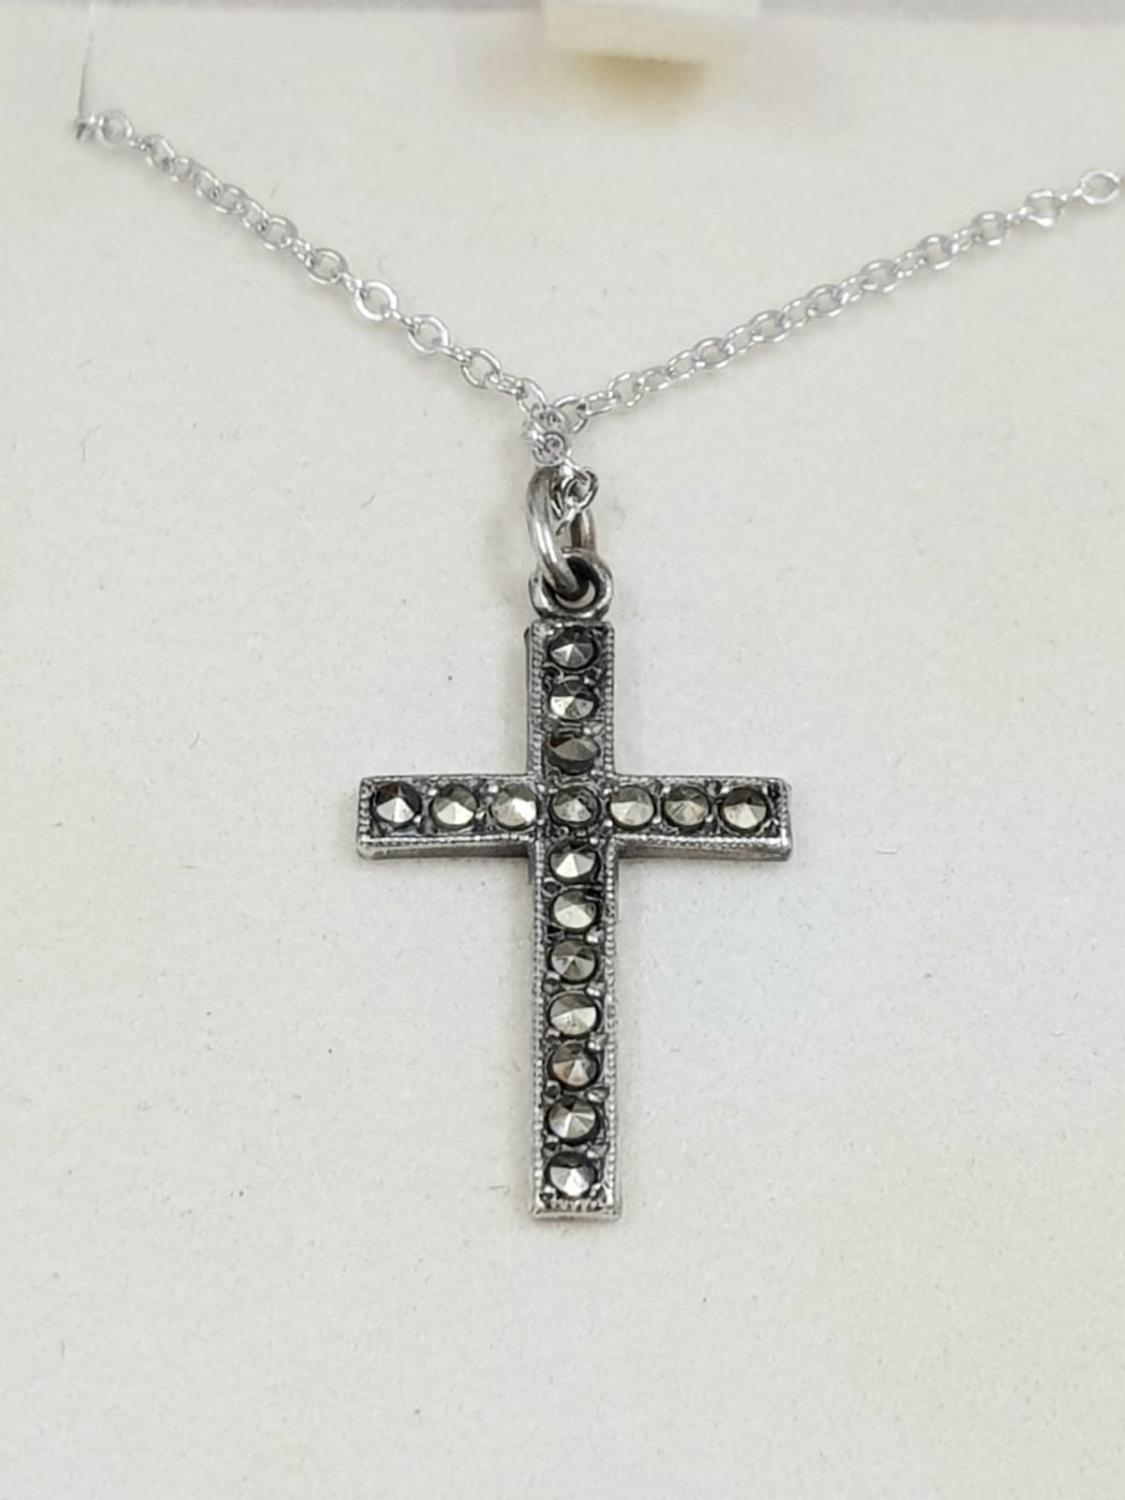 Vintage Silver CROSS on sterling silver CHAIN. 2.41g. 49cm chain. - Image 2 of 3